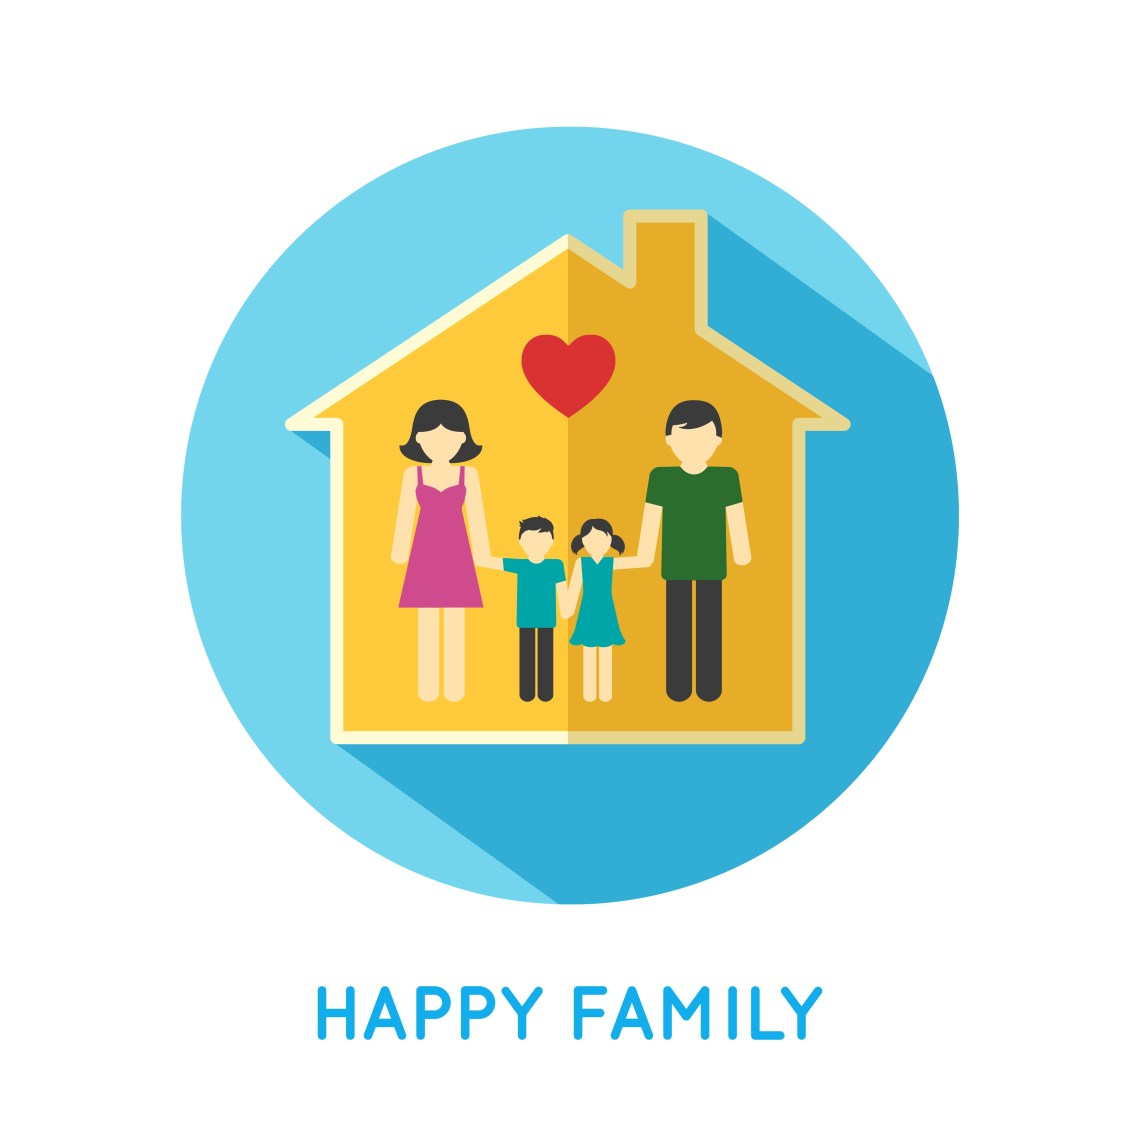 Download Family icon home - Download Free Vectors, Clipart Graphics ...